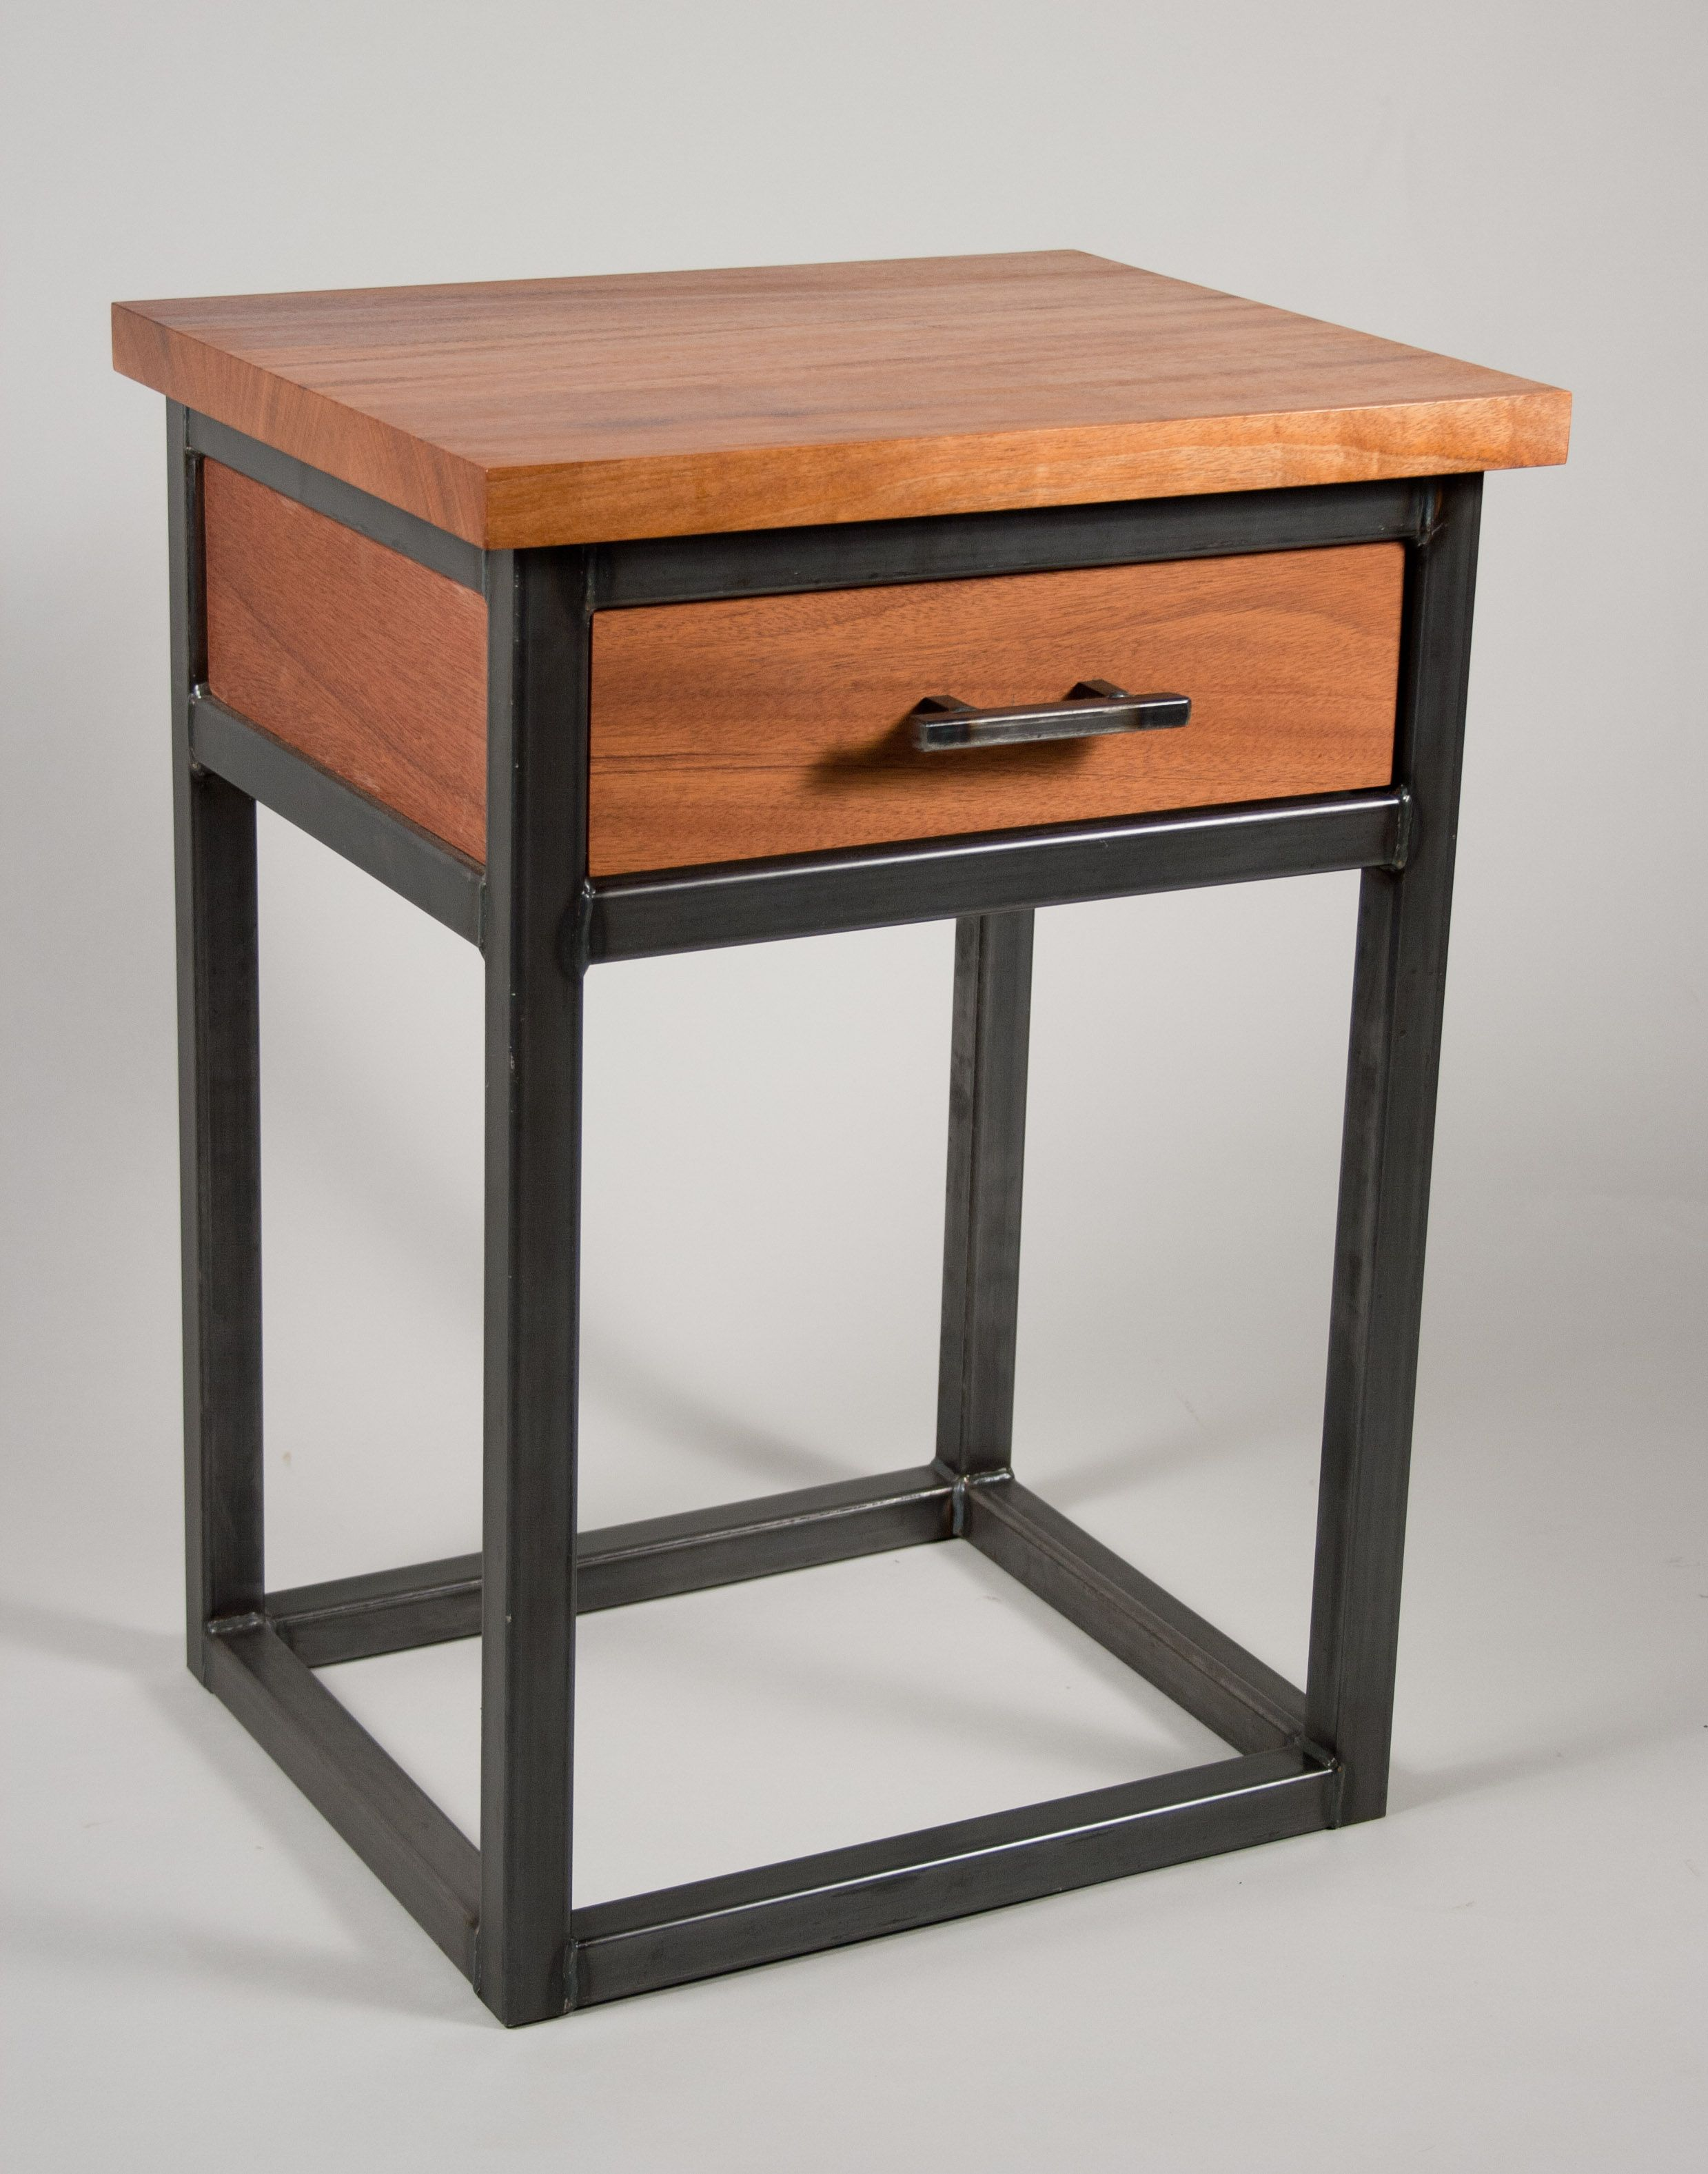 wood and steel furniture - Yahoo Image Search Results ...